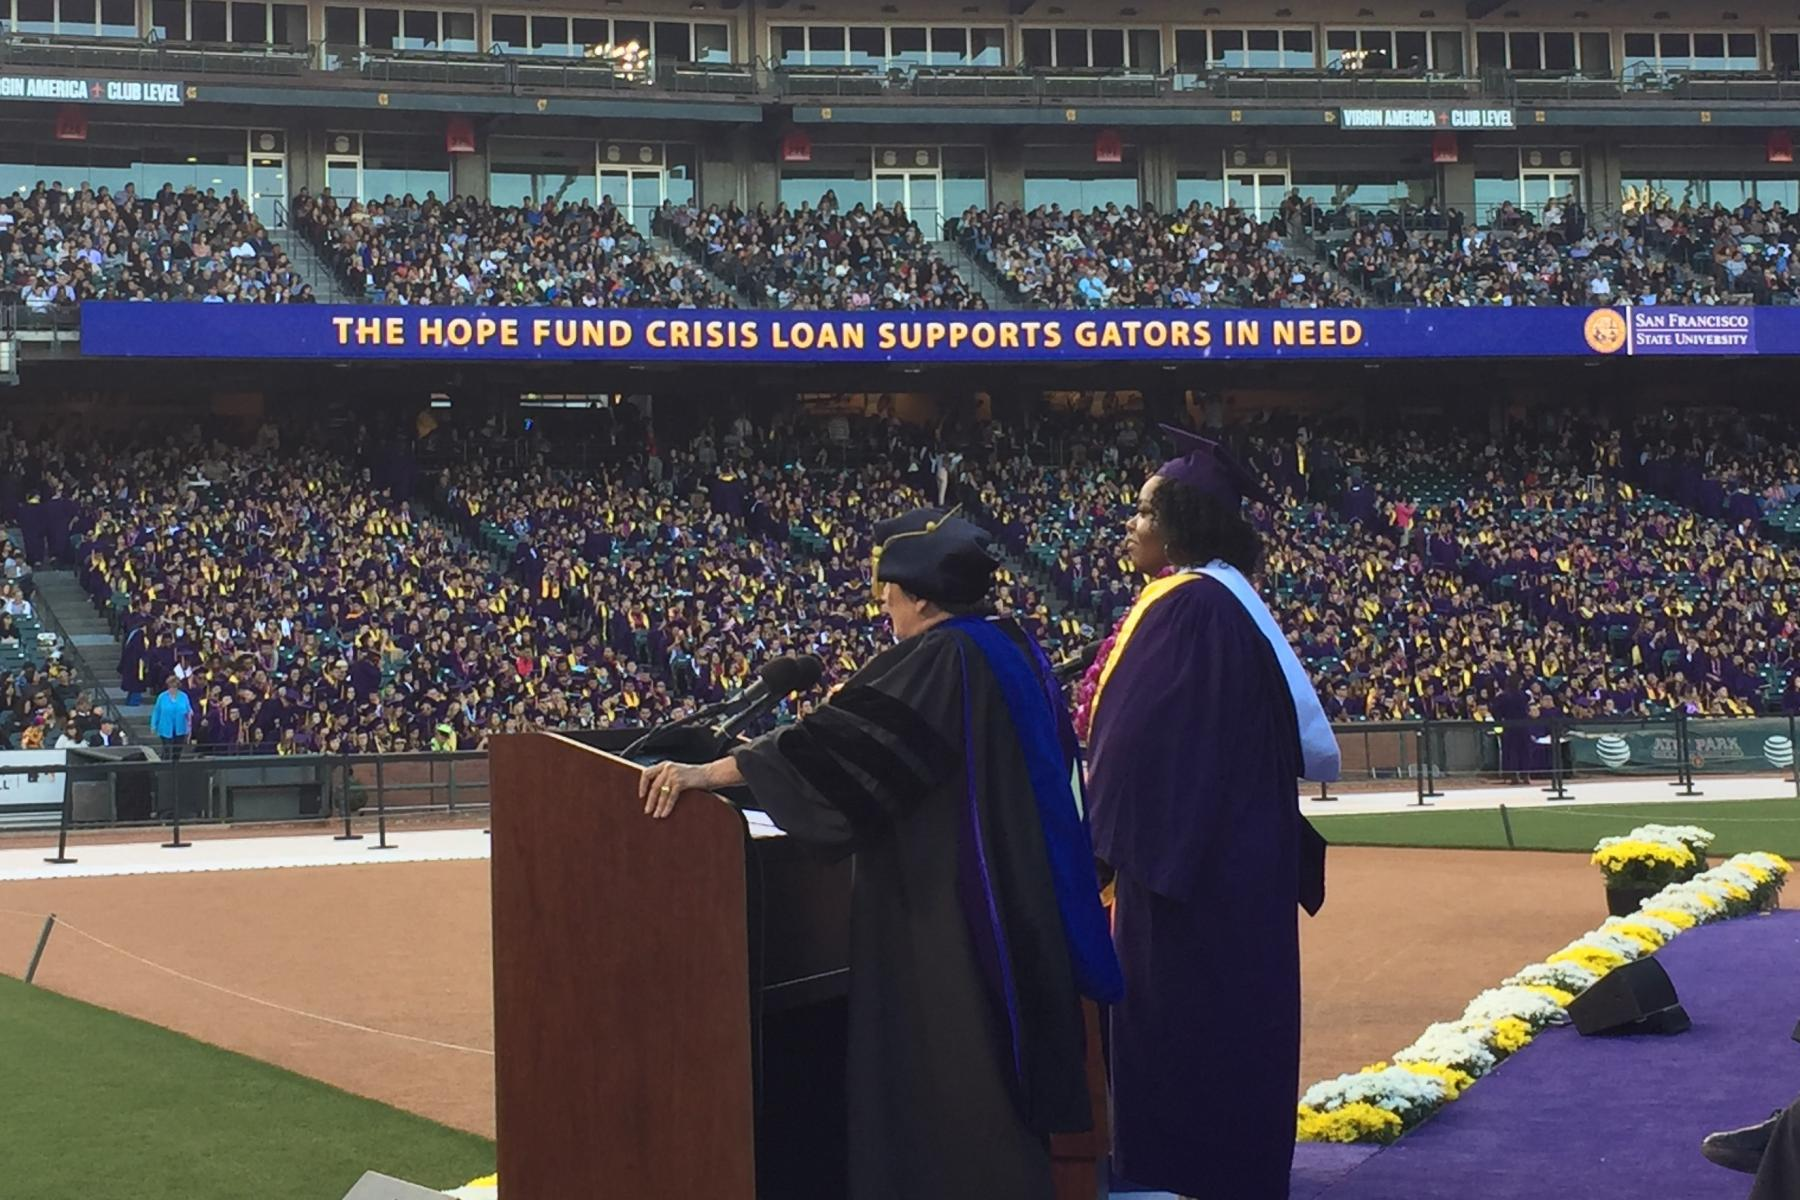 SF State Commencement at AT&T Park on May 27, 2016